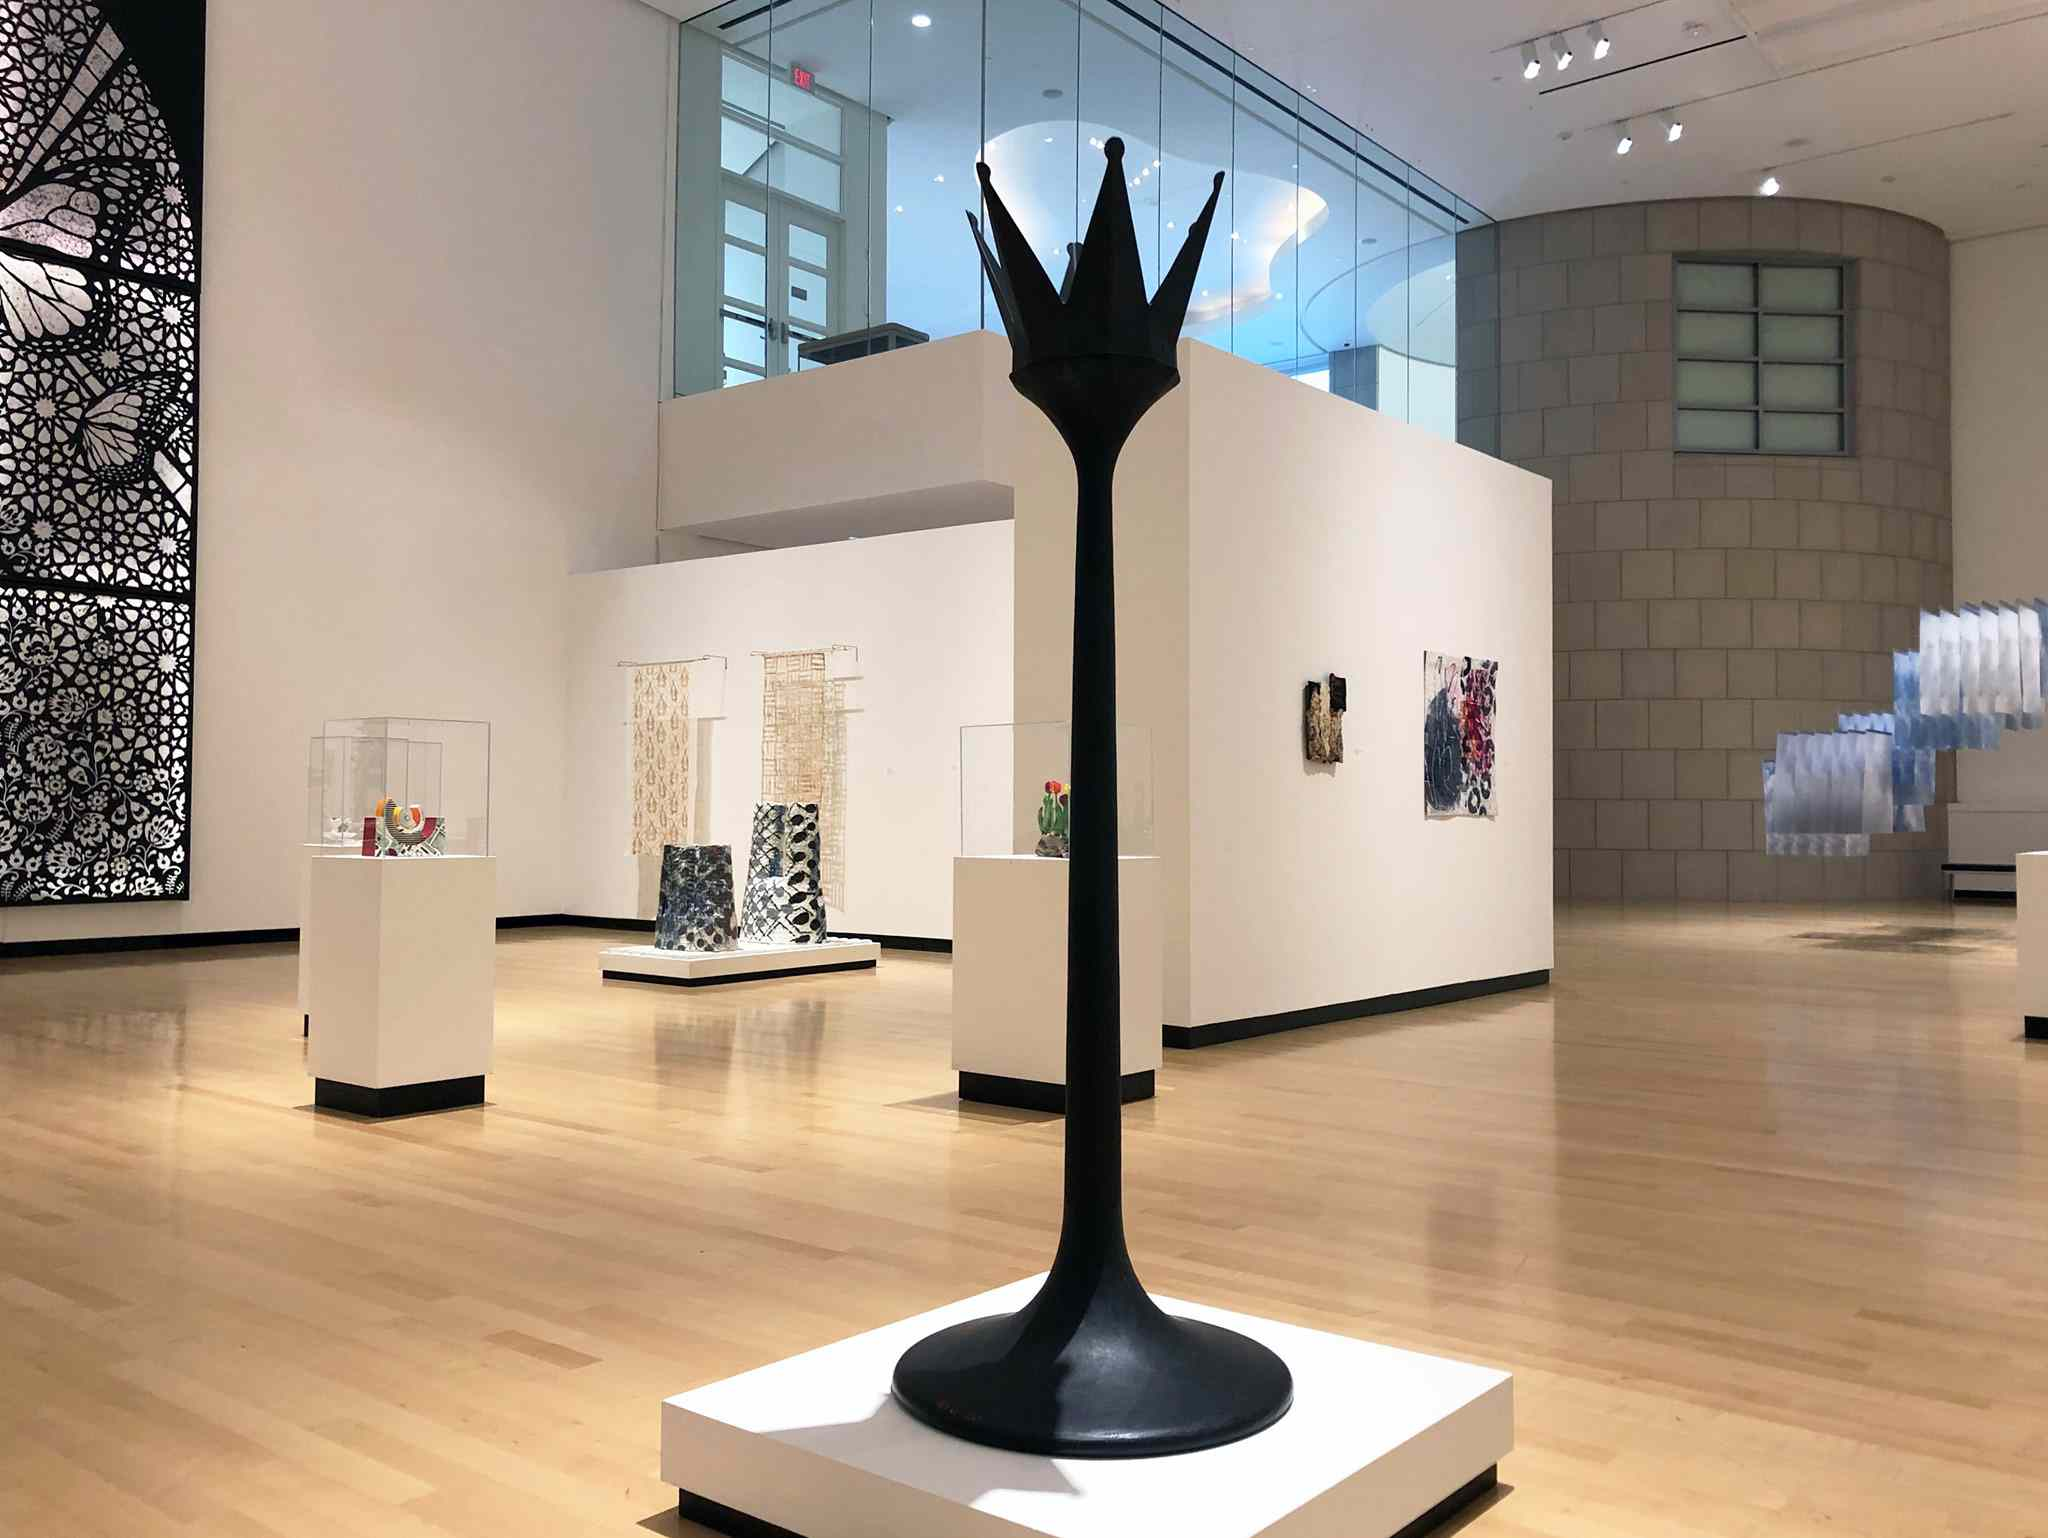 Black sculpture in the center of a large art gallery room